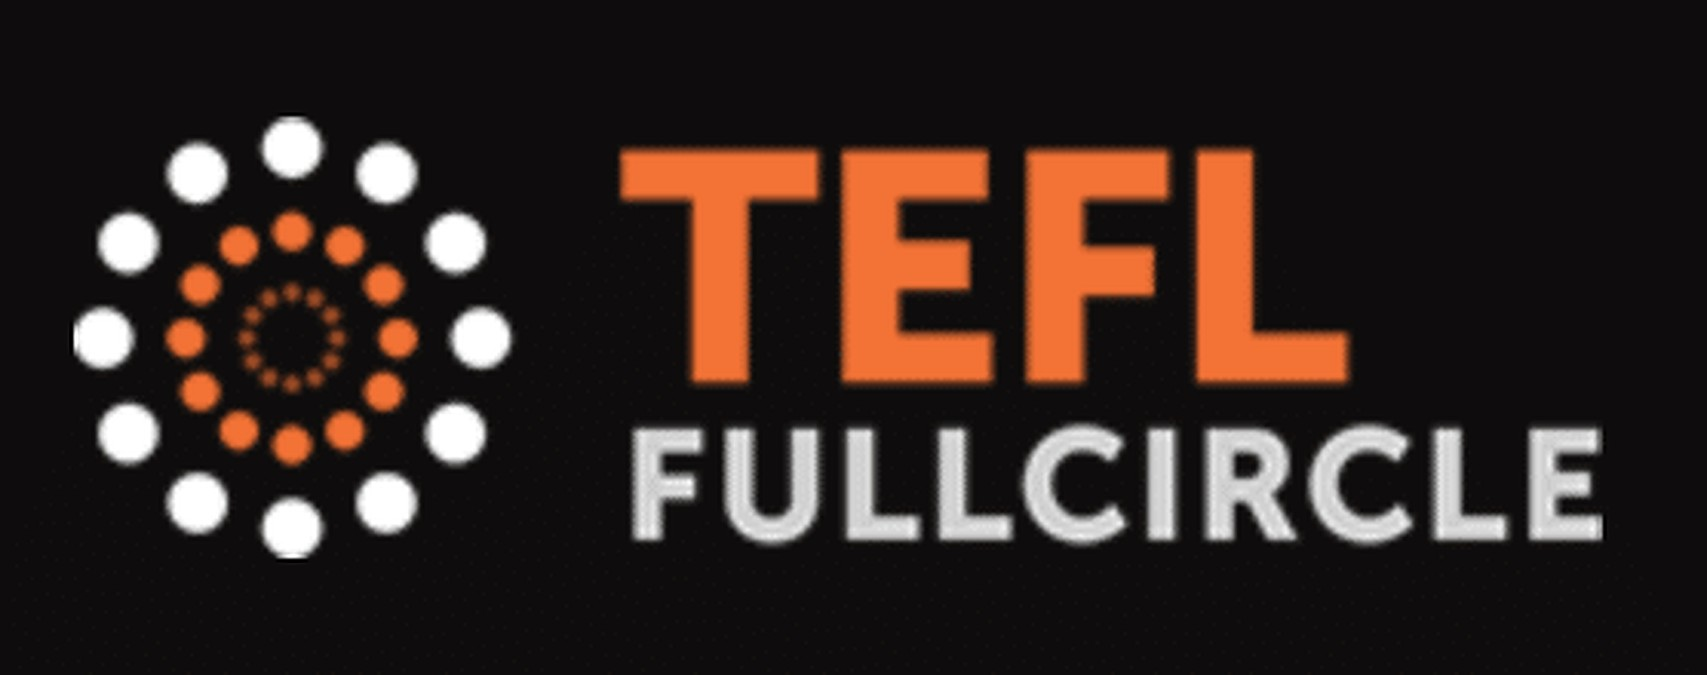 TEFL-Fullcircle-TESOL-Reviews-Logo